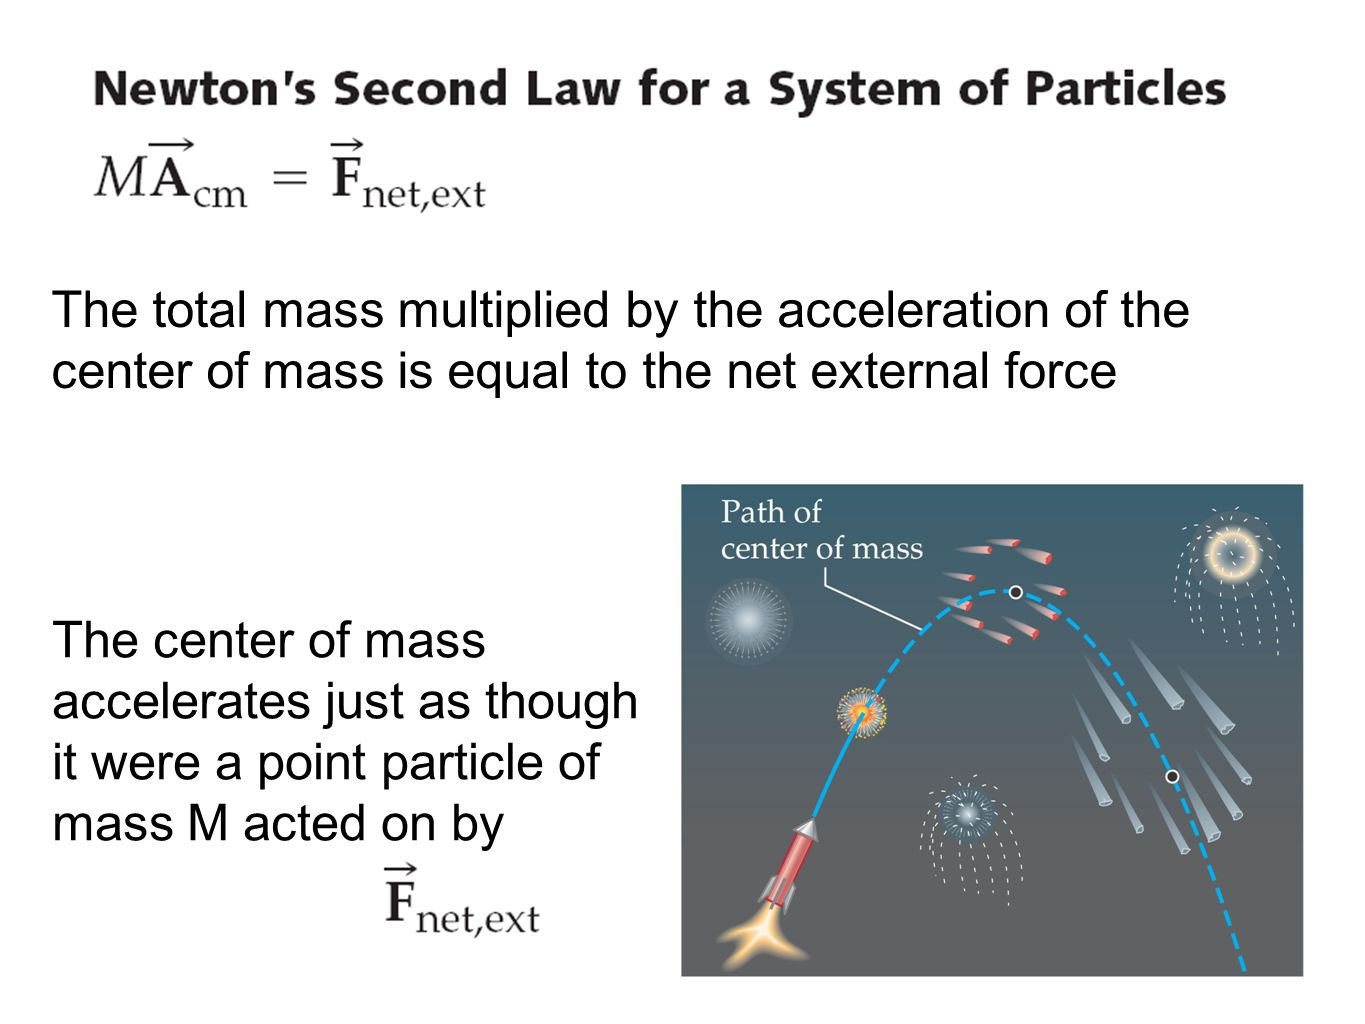 The total mass multiplied by the acceleration of the center of mass is equal to the net external force